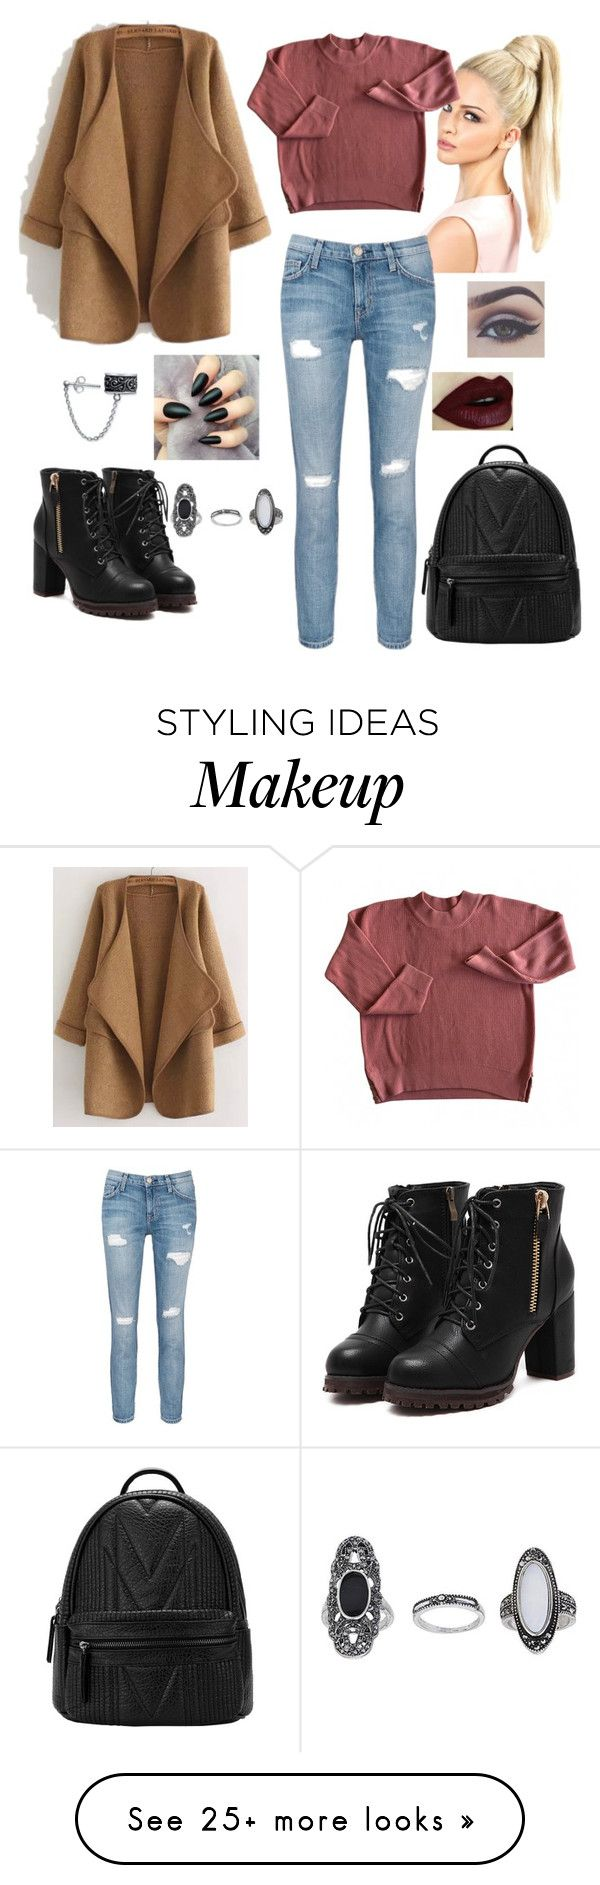 """""""Untitled #416"""" by jojomix on Polyvore featuring WithChic, Current/Elliott, Bling Jewelry and Topshop"""